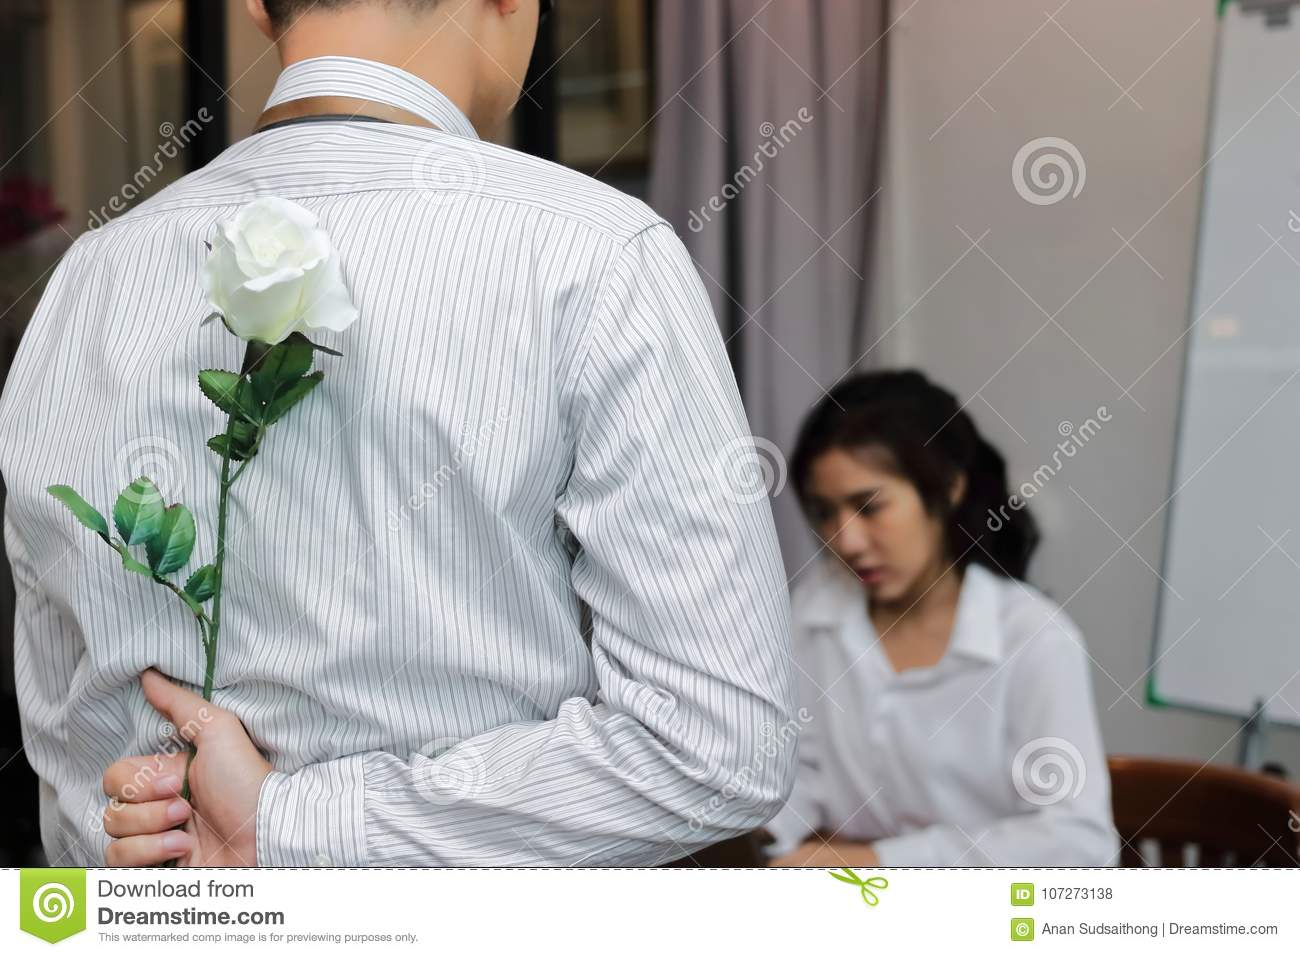 Young Asian man hiding a white rose behind his back for surprise girlfriend in valentines day. Love and romance in office concept.